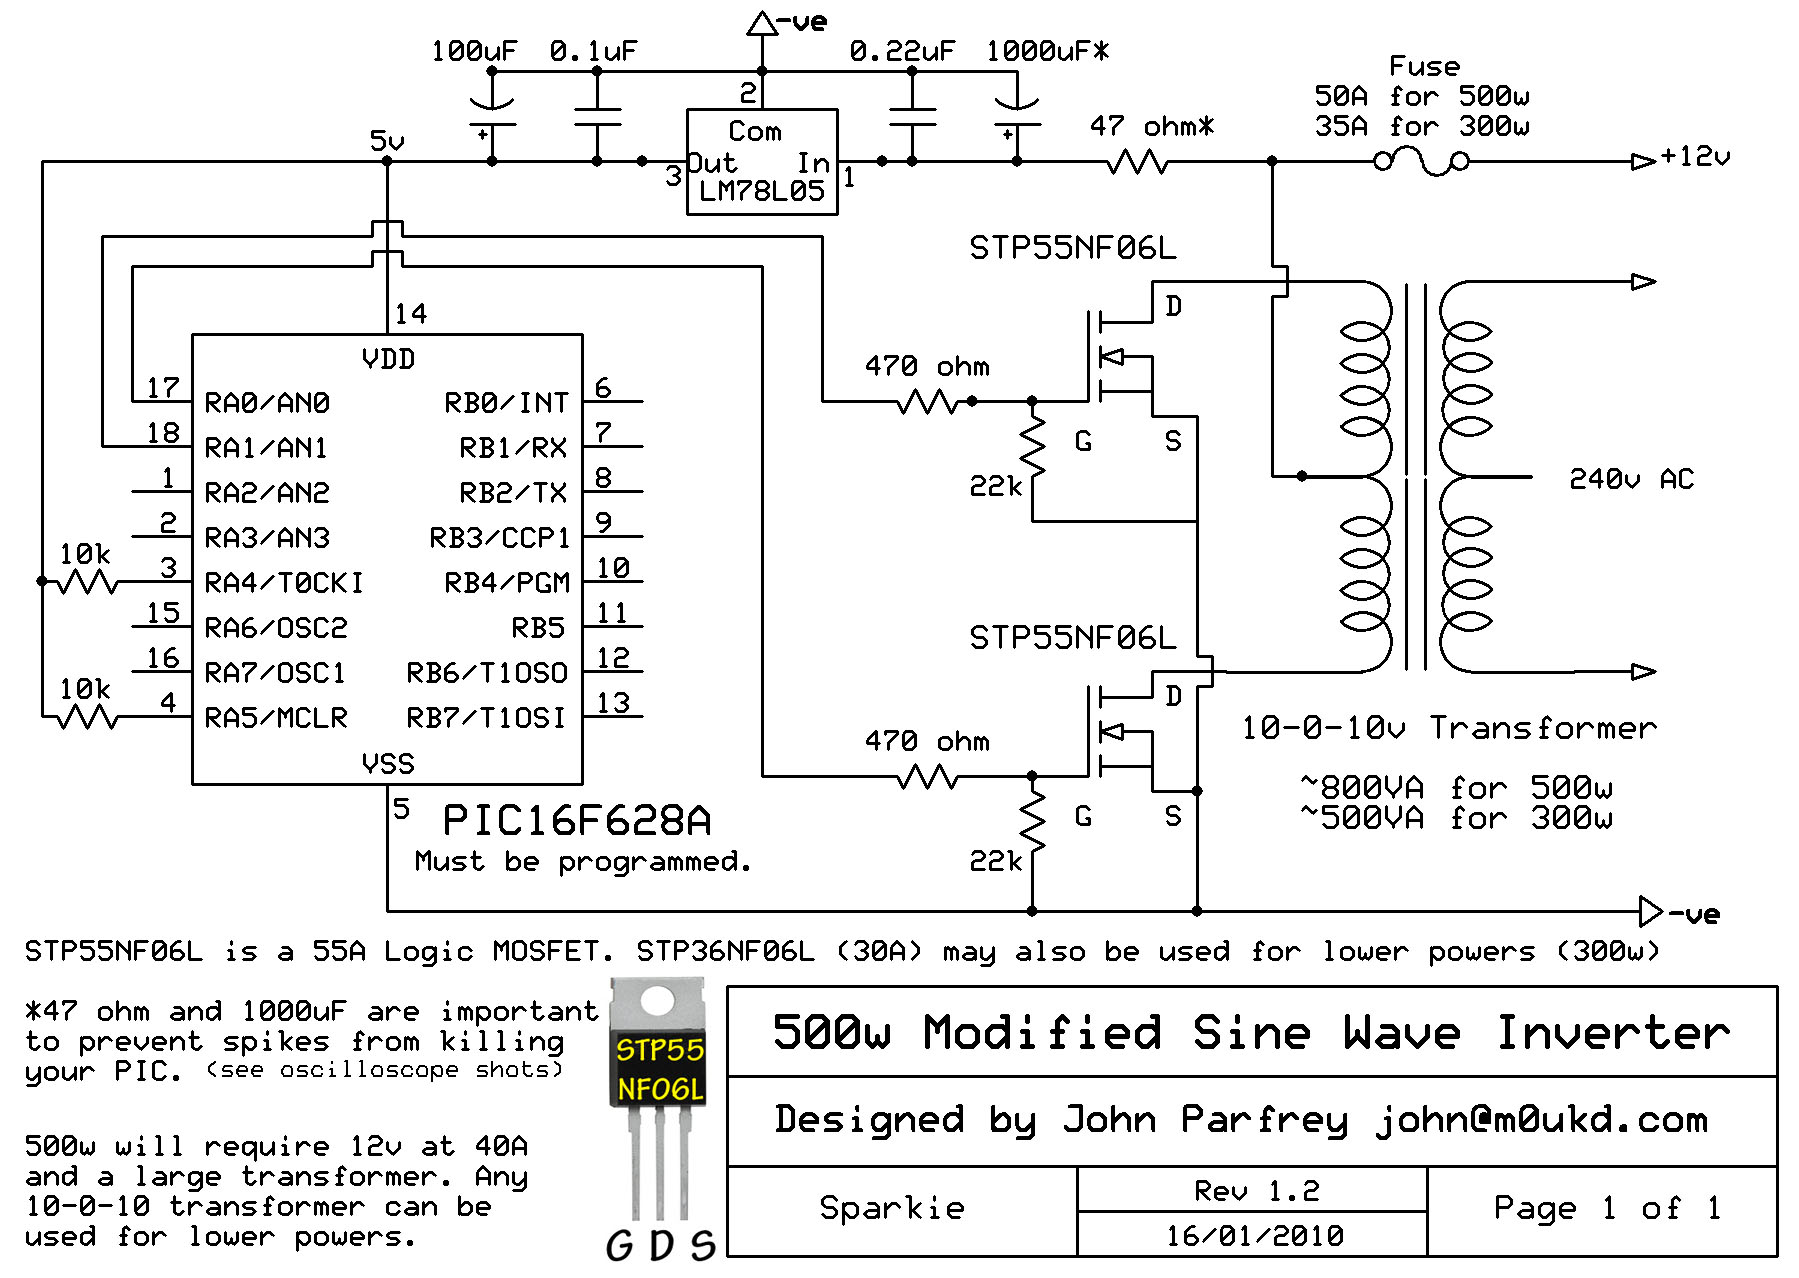 500w modified sine wave inverter schematic circuit diagram click for larger schematic circuit diagram pooptronica